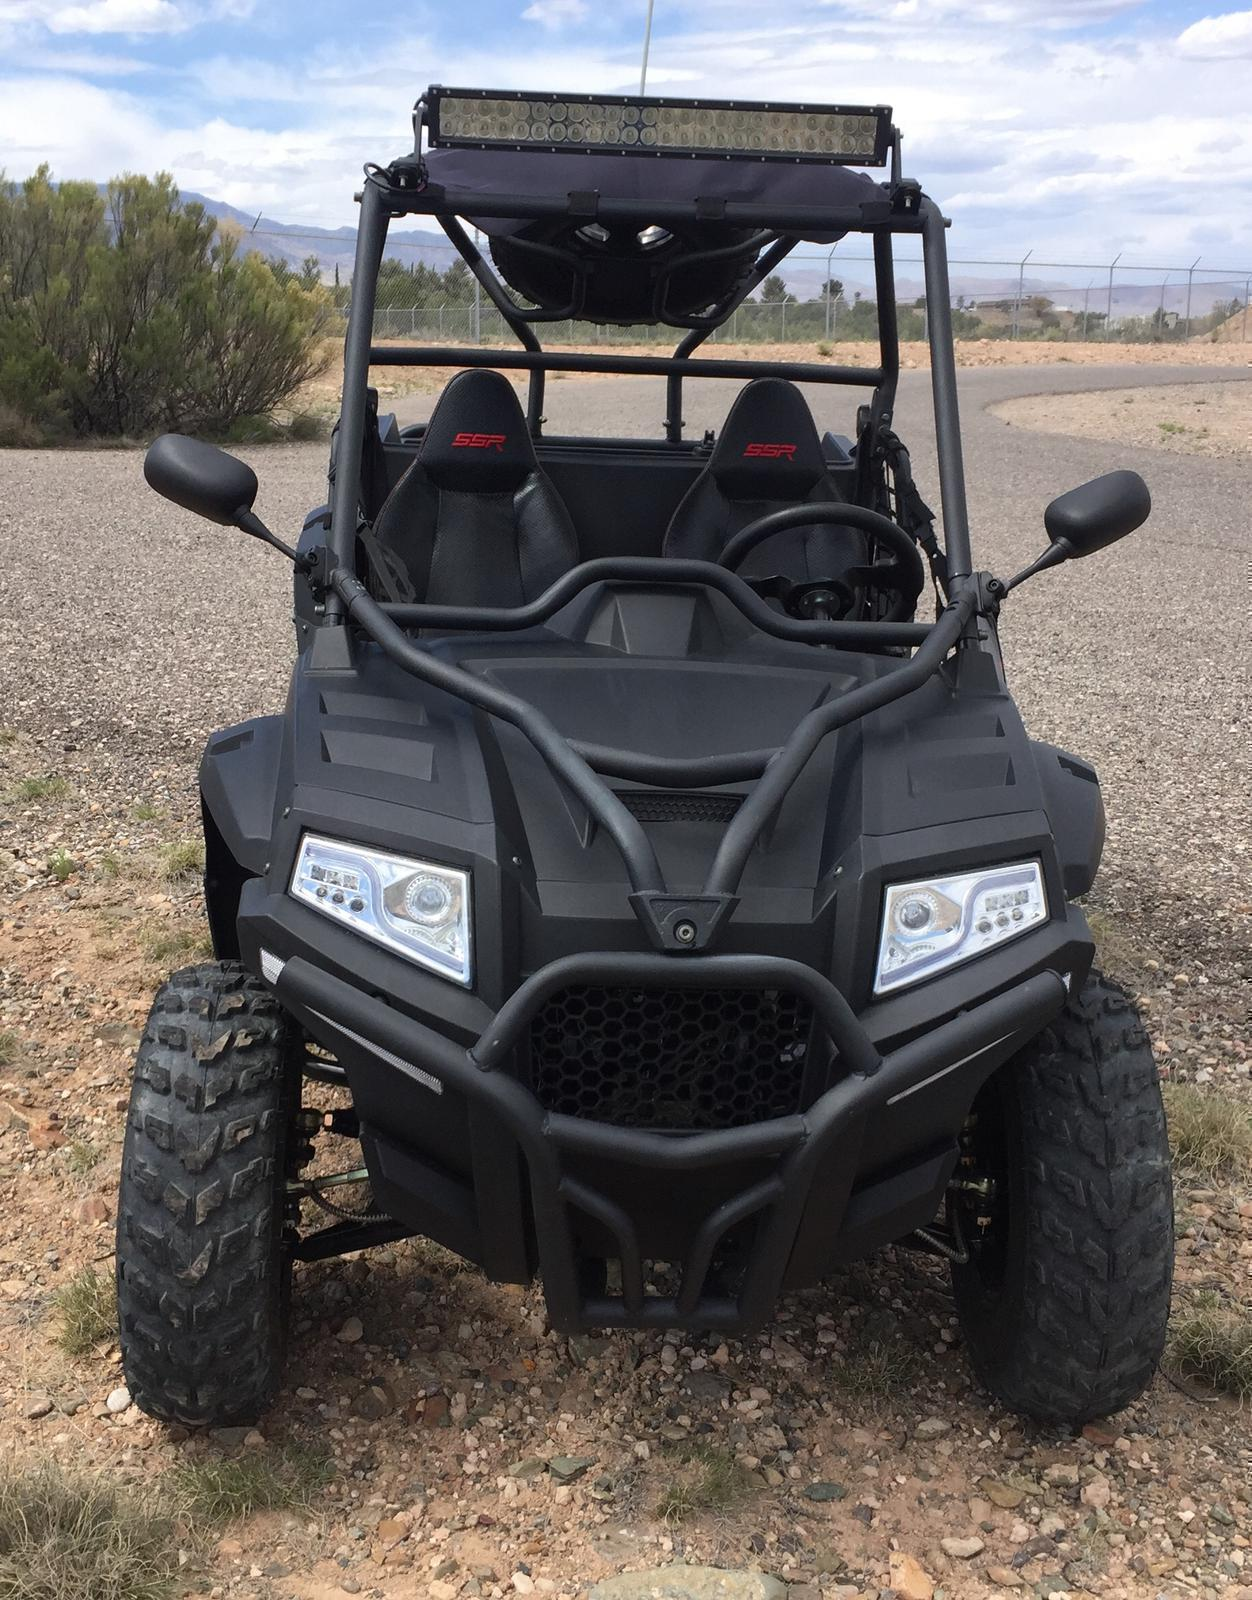 2019 SSR Motorsports SRU 170 Payment as low as $119-mo OAC